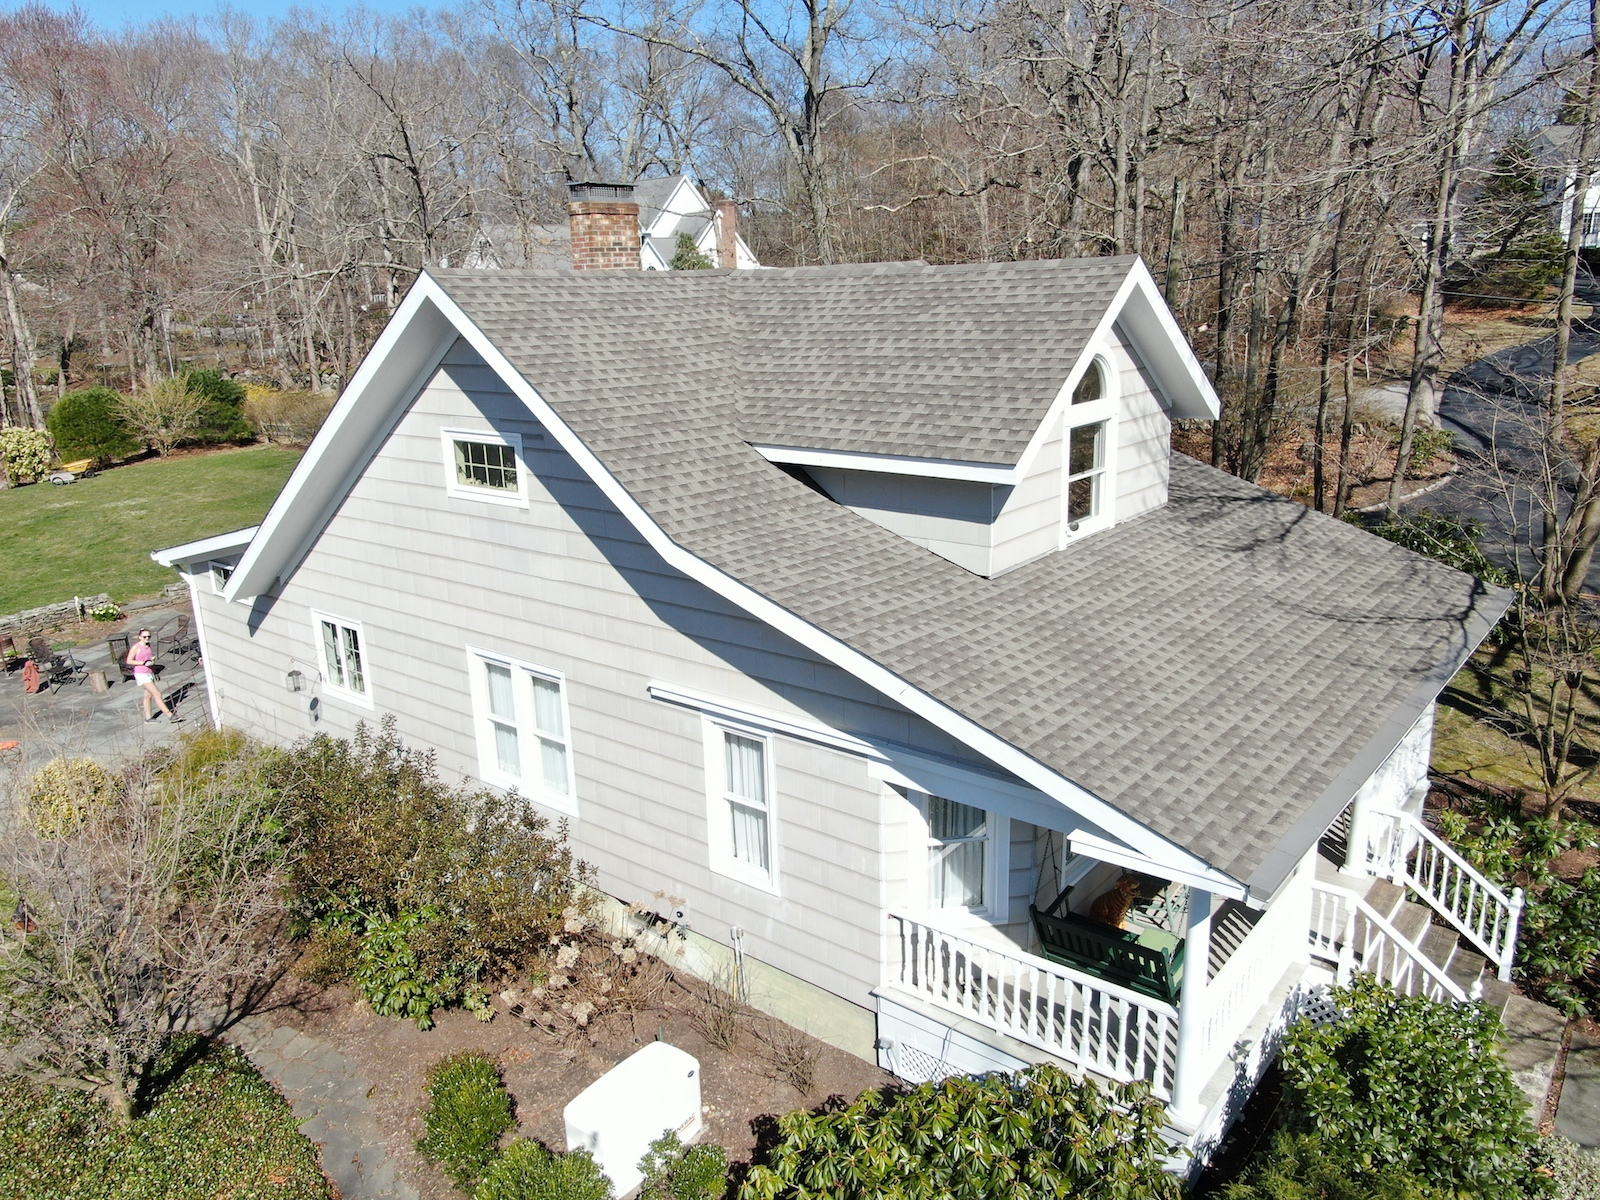 Architectural Asphalt Roof on Madison, CT Home